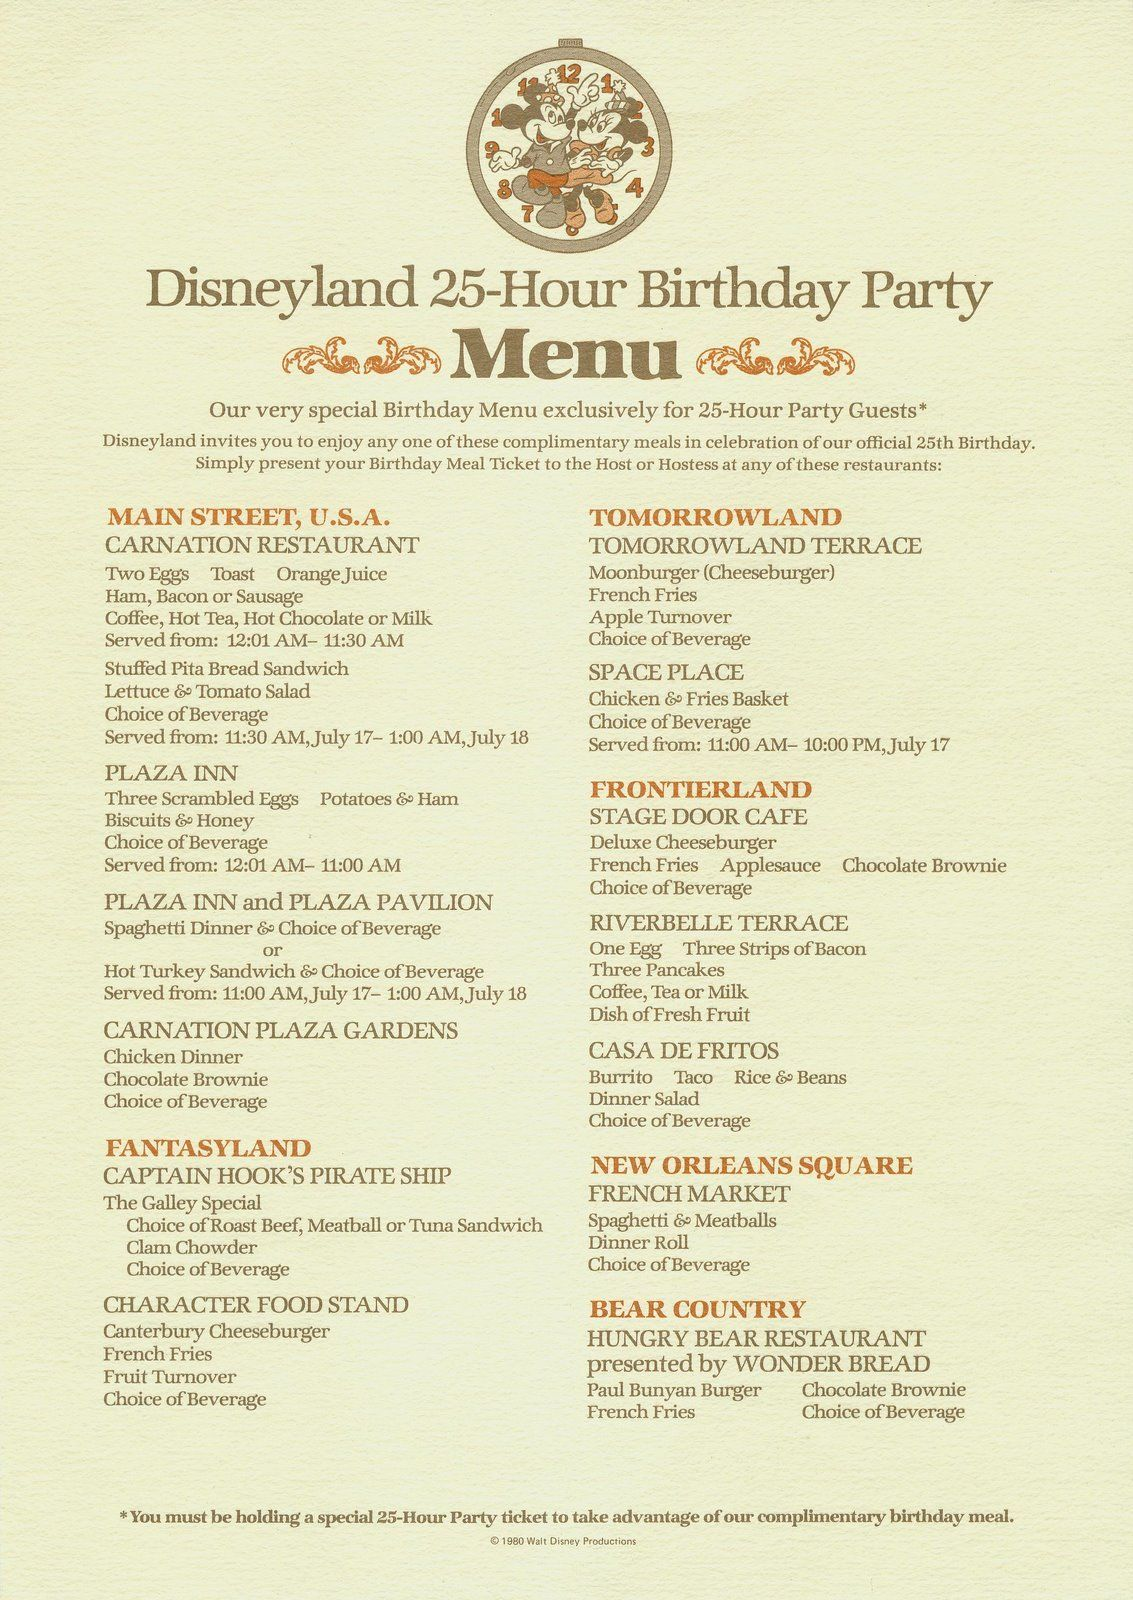 Bloodonthesaddle Menu Handout From Disneyland S 25th Anniversary Party On July 17th 1980 I M Tempted By A Me In 2020 Vintage Disney Disney Menus Vintage Disneyland